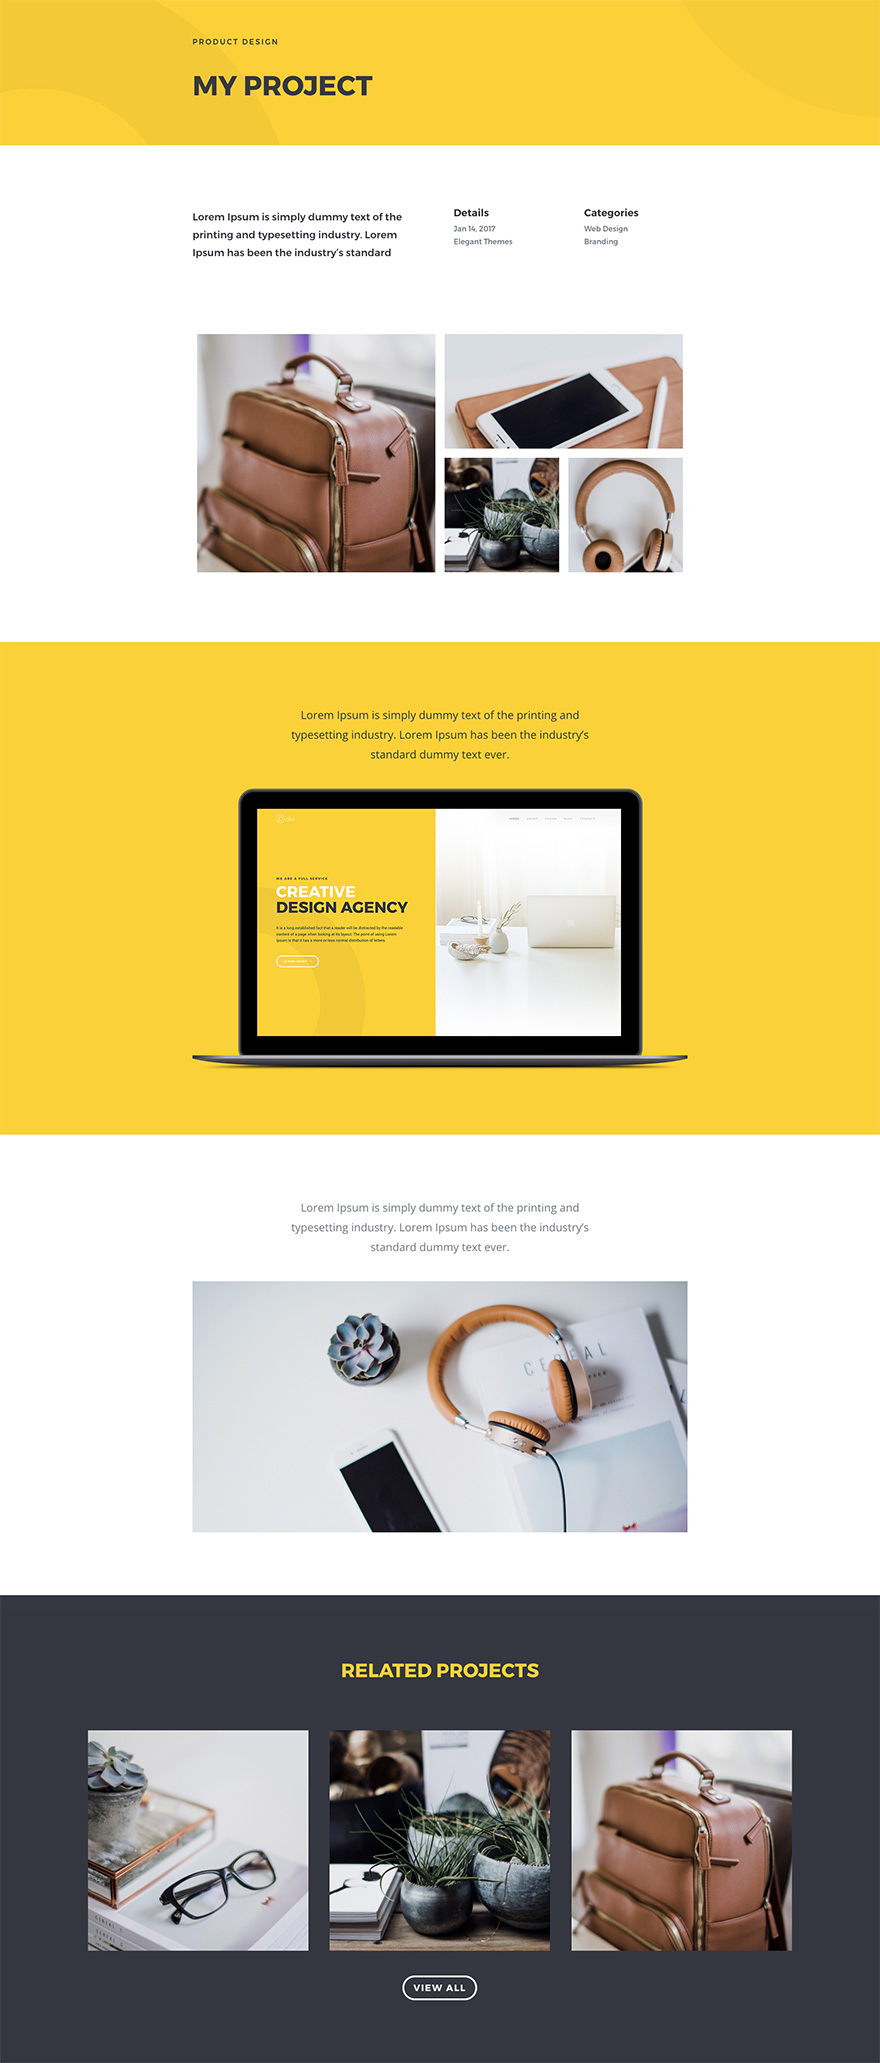 Design Agency Layout Pack Project 2